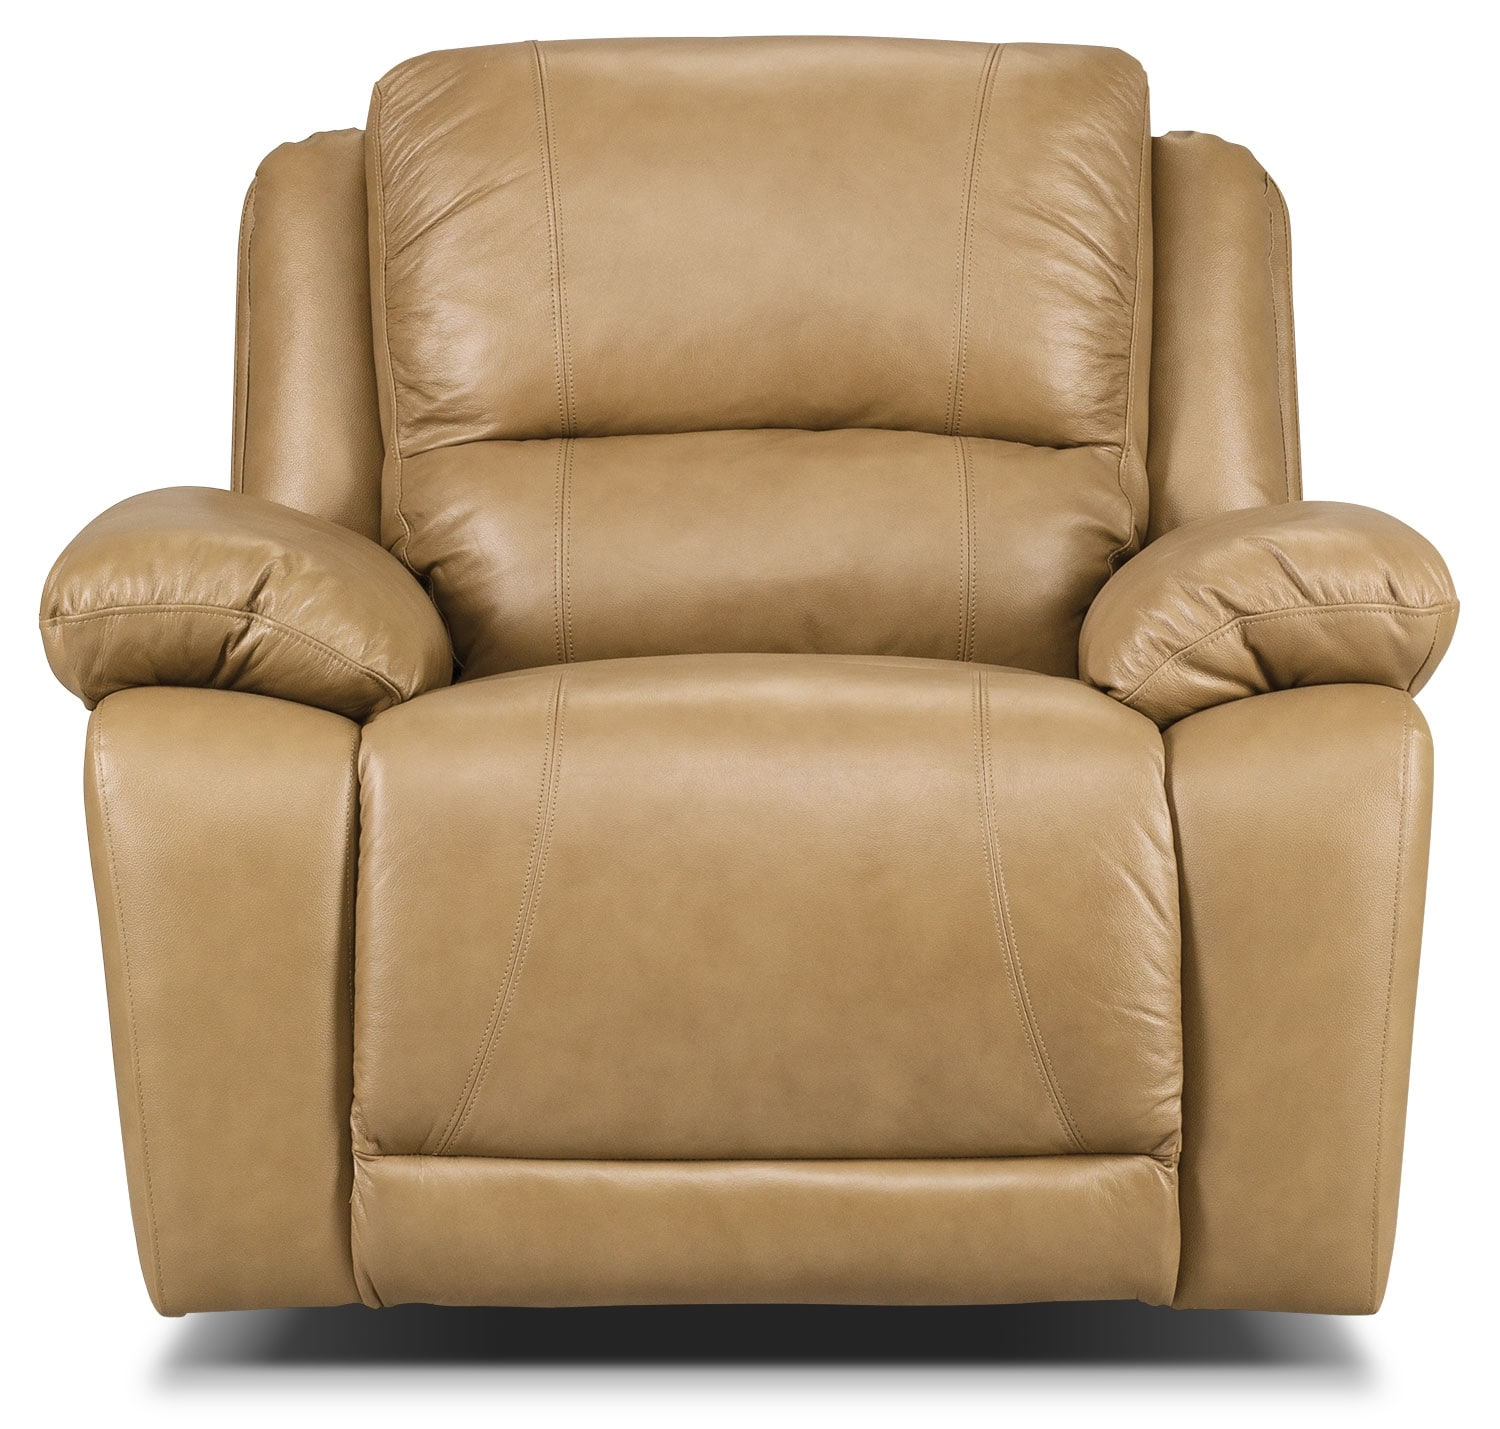 Marco Genuine Leather Reclining Chair - Toffee